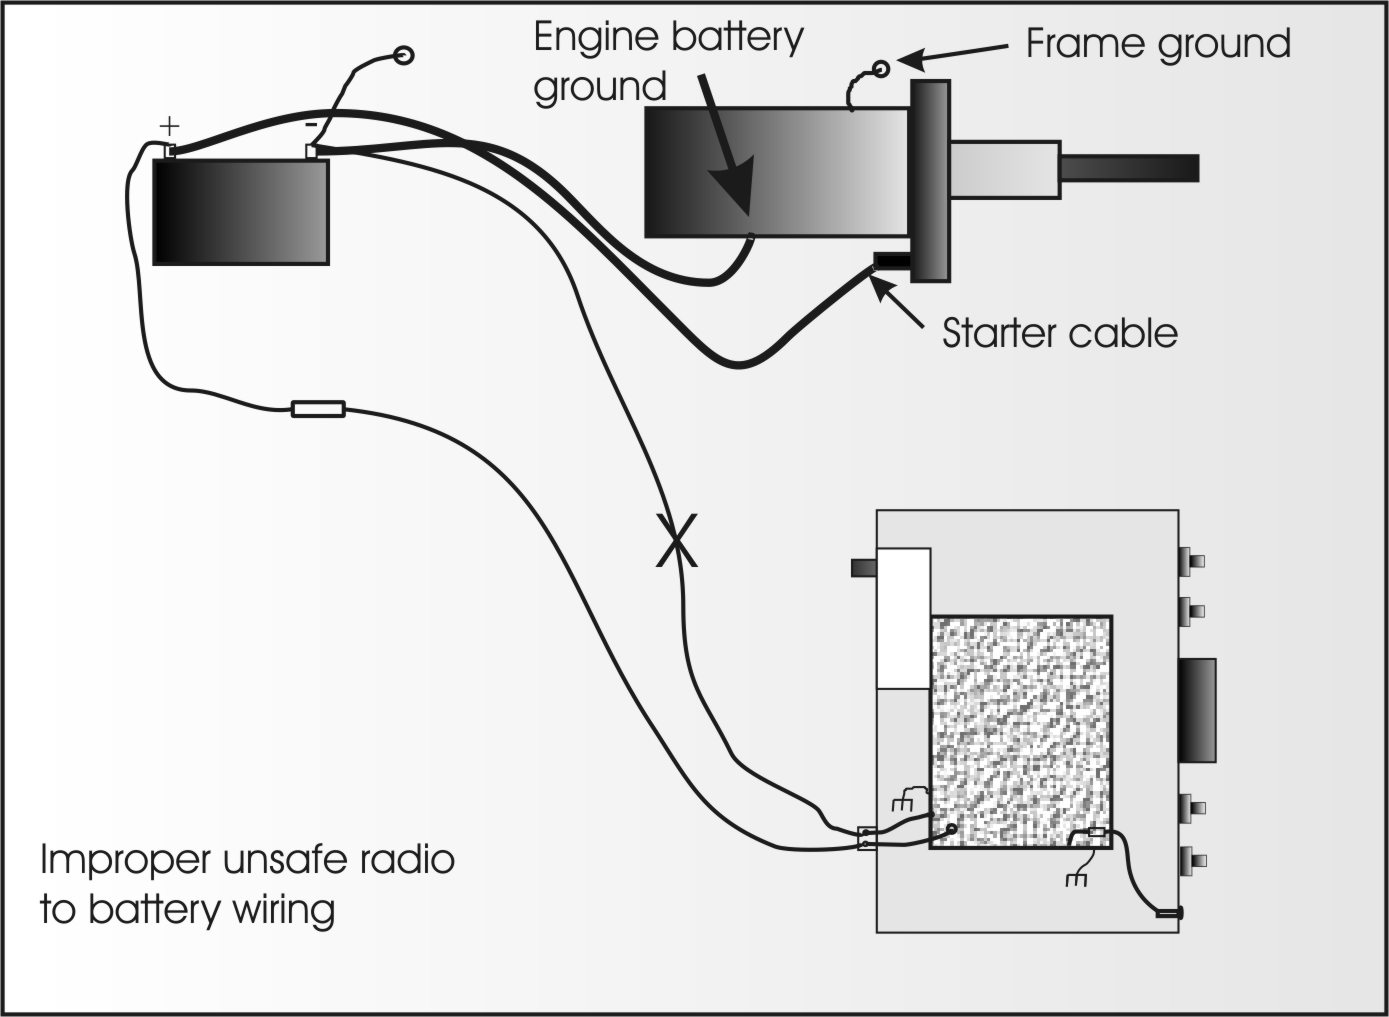 Improper mobile radio grounding